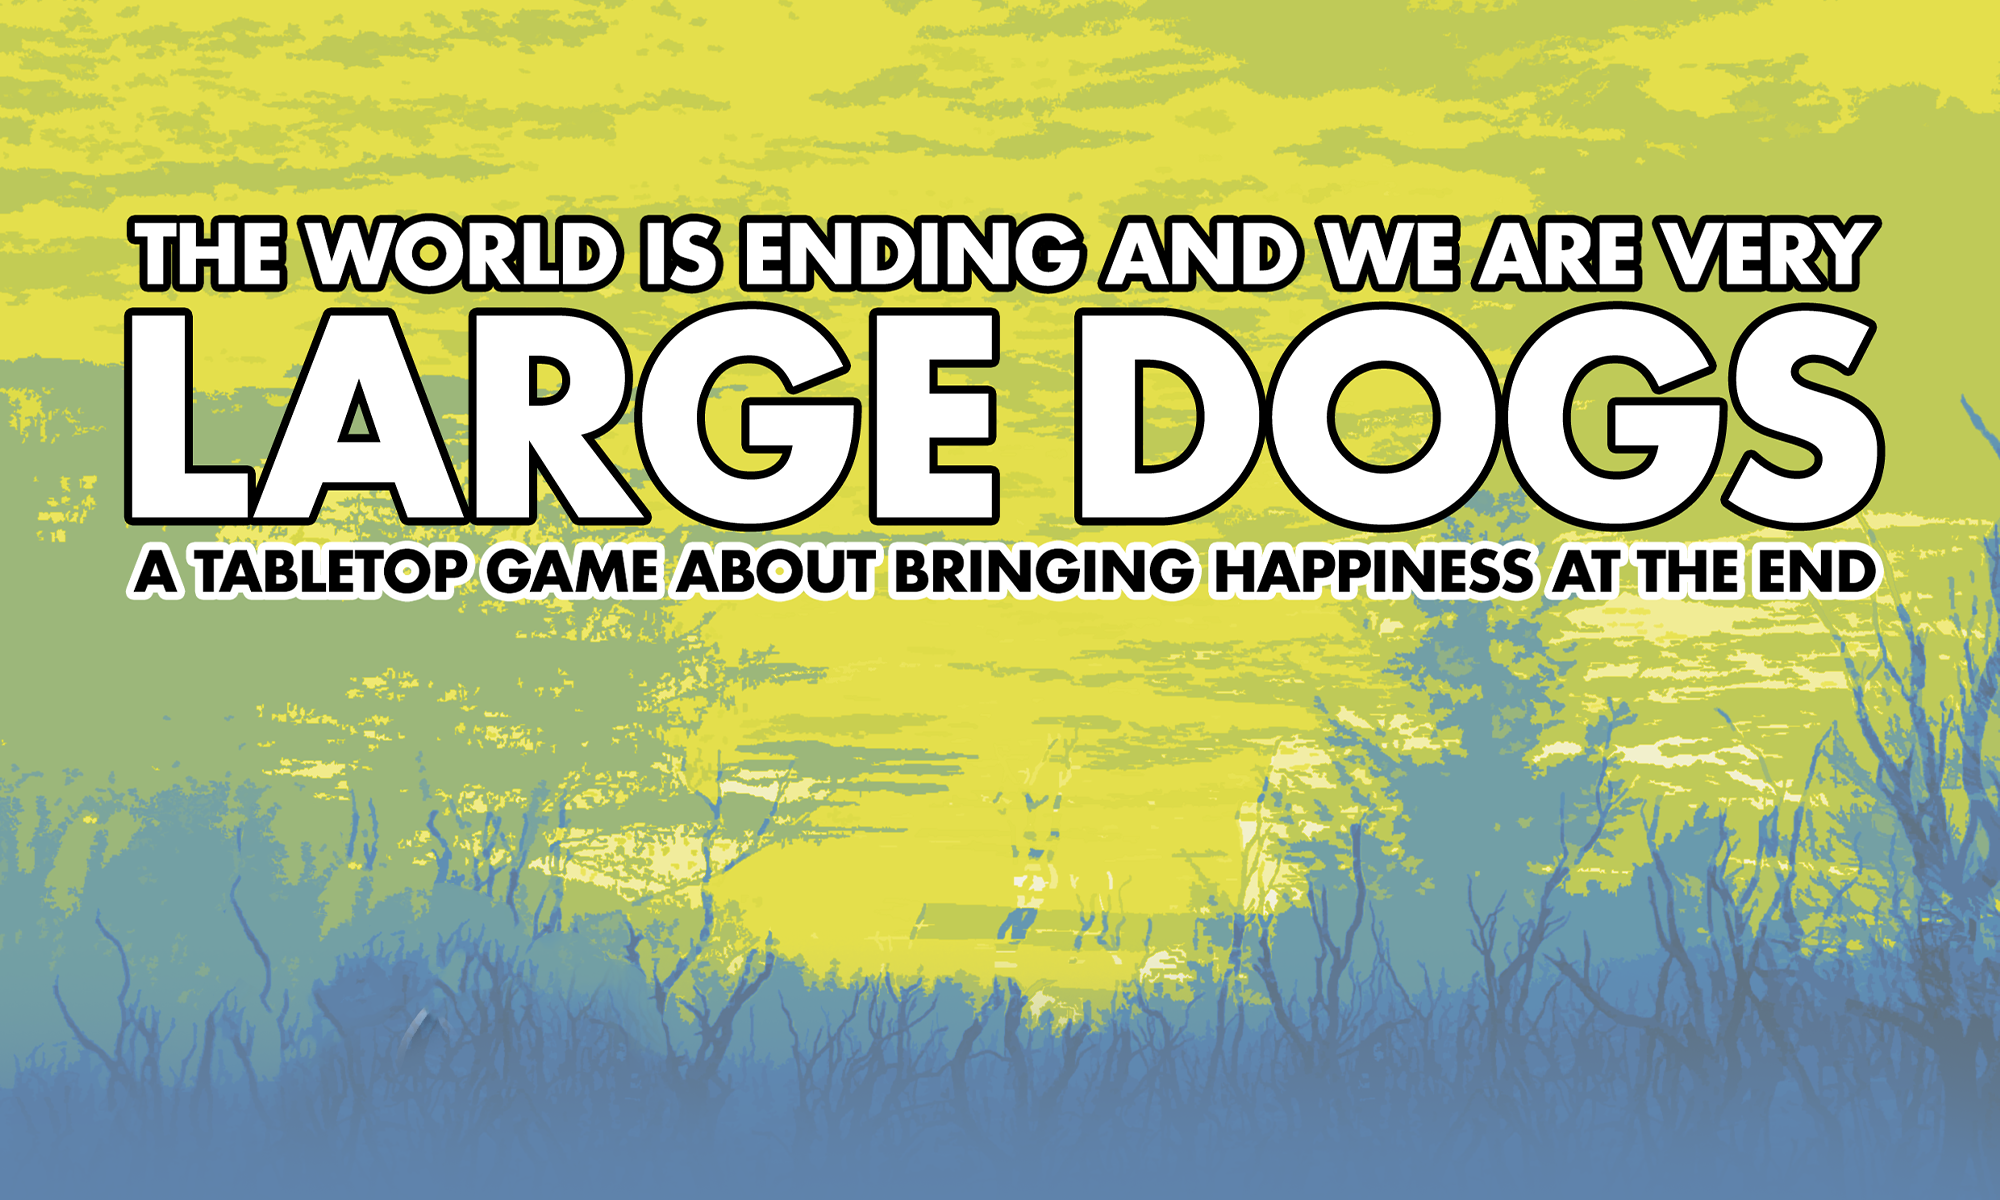 The World is Ending and We Are Very Large Dogs